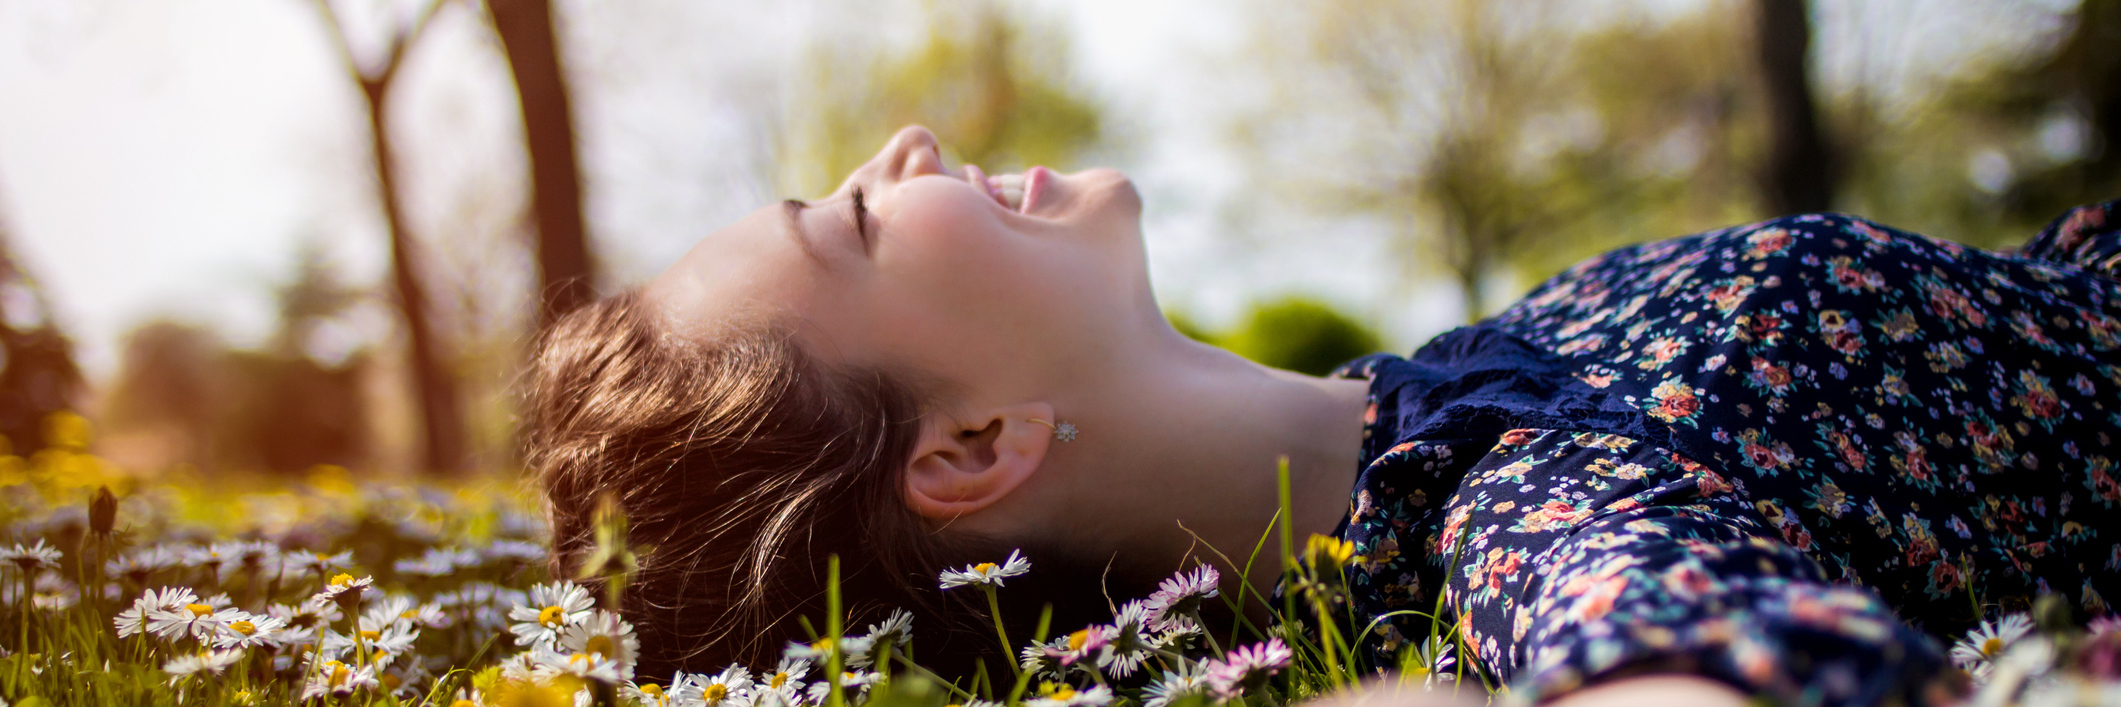 woman lying in field of flowers and smiling